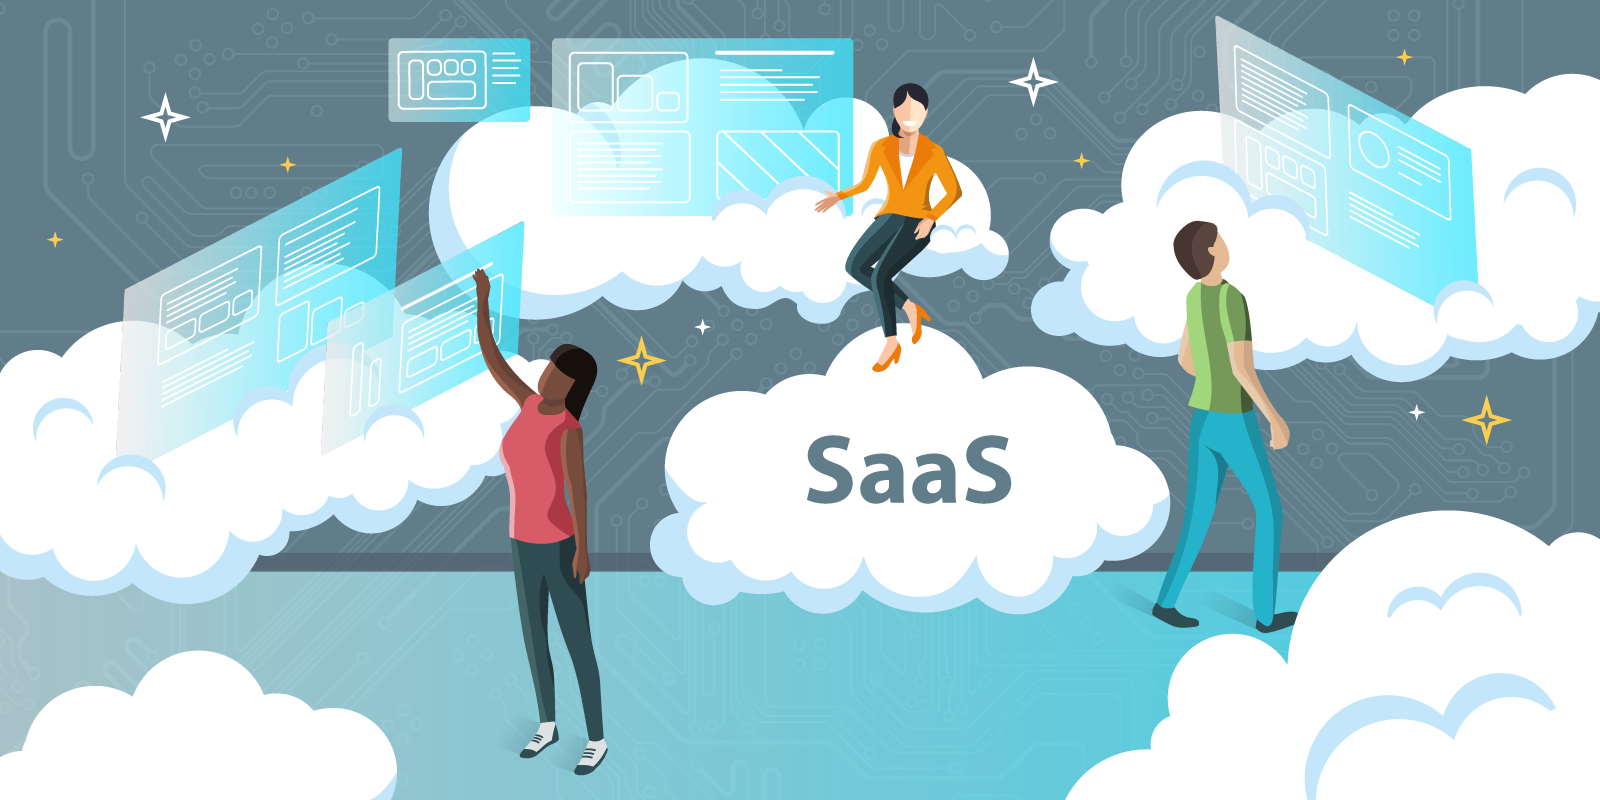 SaaS: Software as a Service is helping ever more SMEs